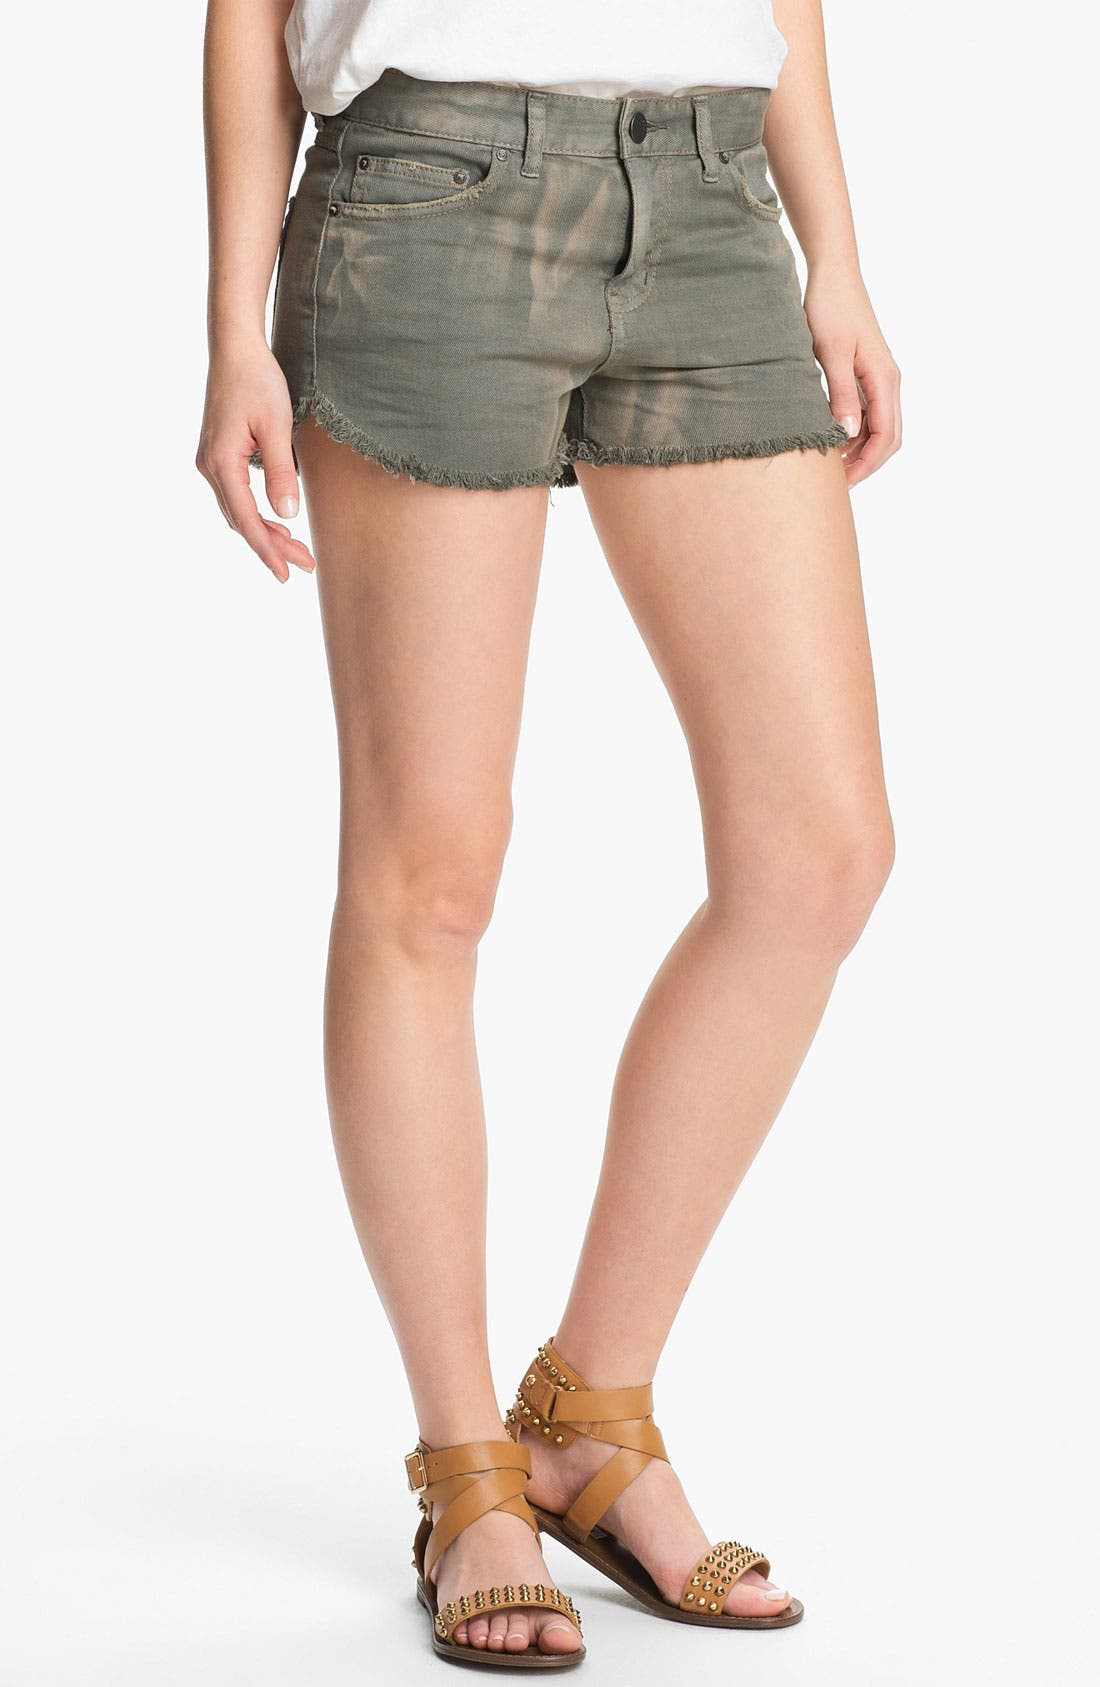 Alternate Image 1 Selected - Free People 'Dolphin' Cutoff Denim Shorts (Grey)